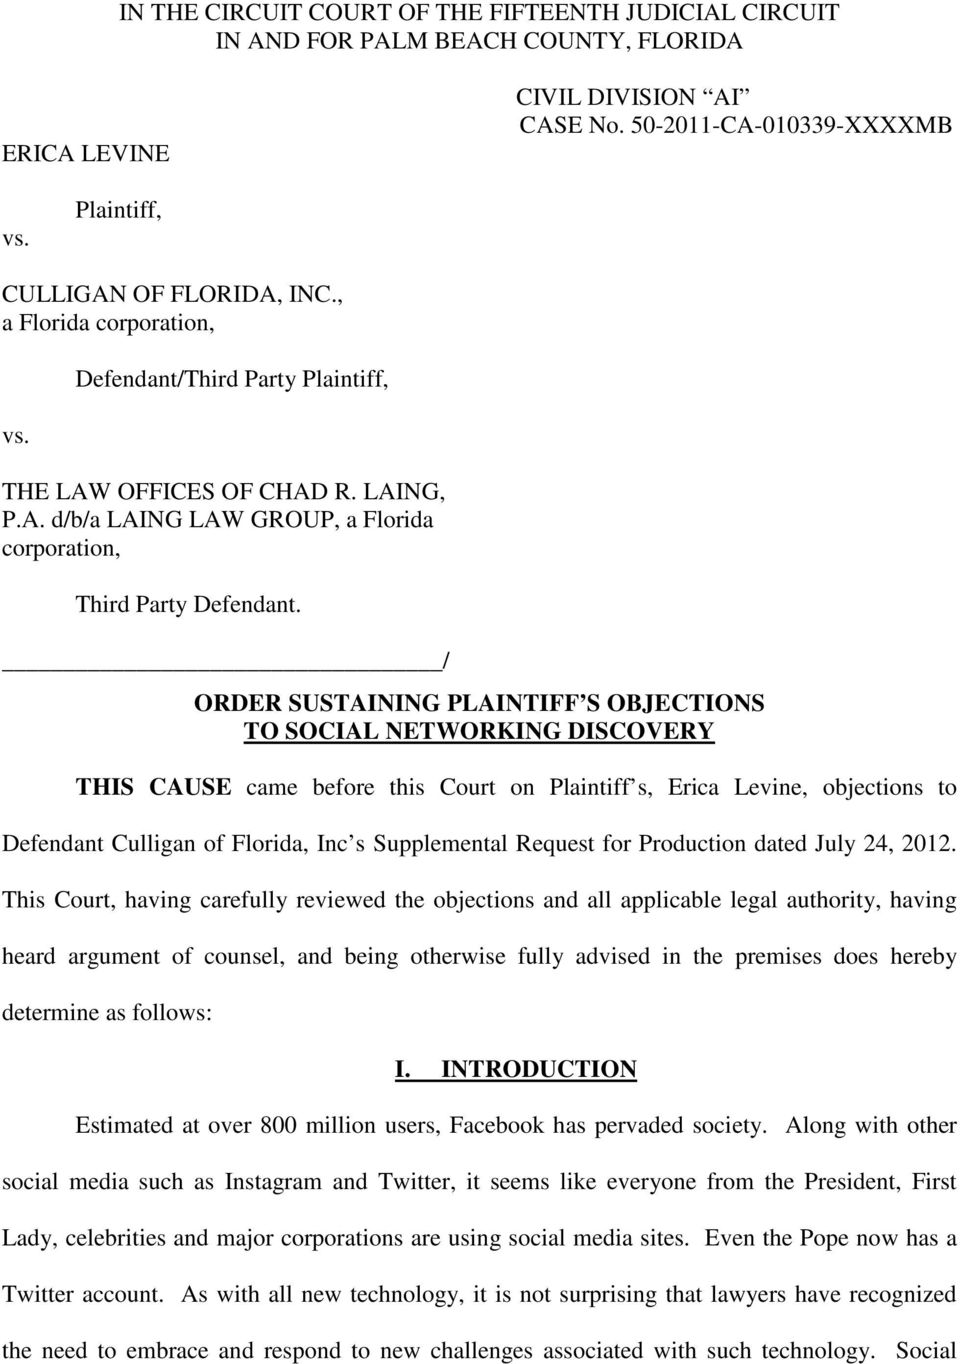 / ORDER SUSTAINING PLAINTIFF S OBJECTIONS TO SOCIAL NETWORKING DISCOVERY THIS CAUSE came before this Court on Plaintiff s, Erica Levine, objections to Defendant Culligan of Florida, Inc s